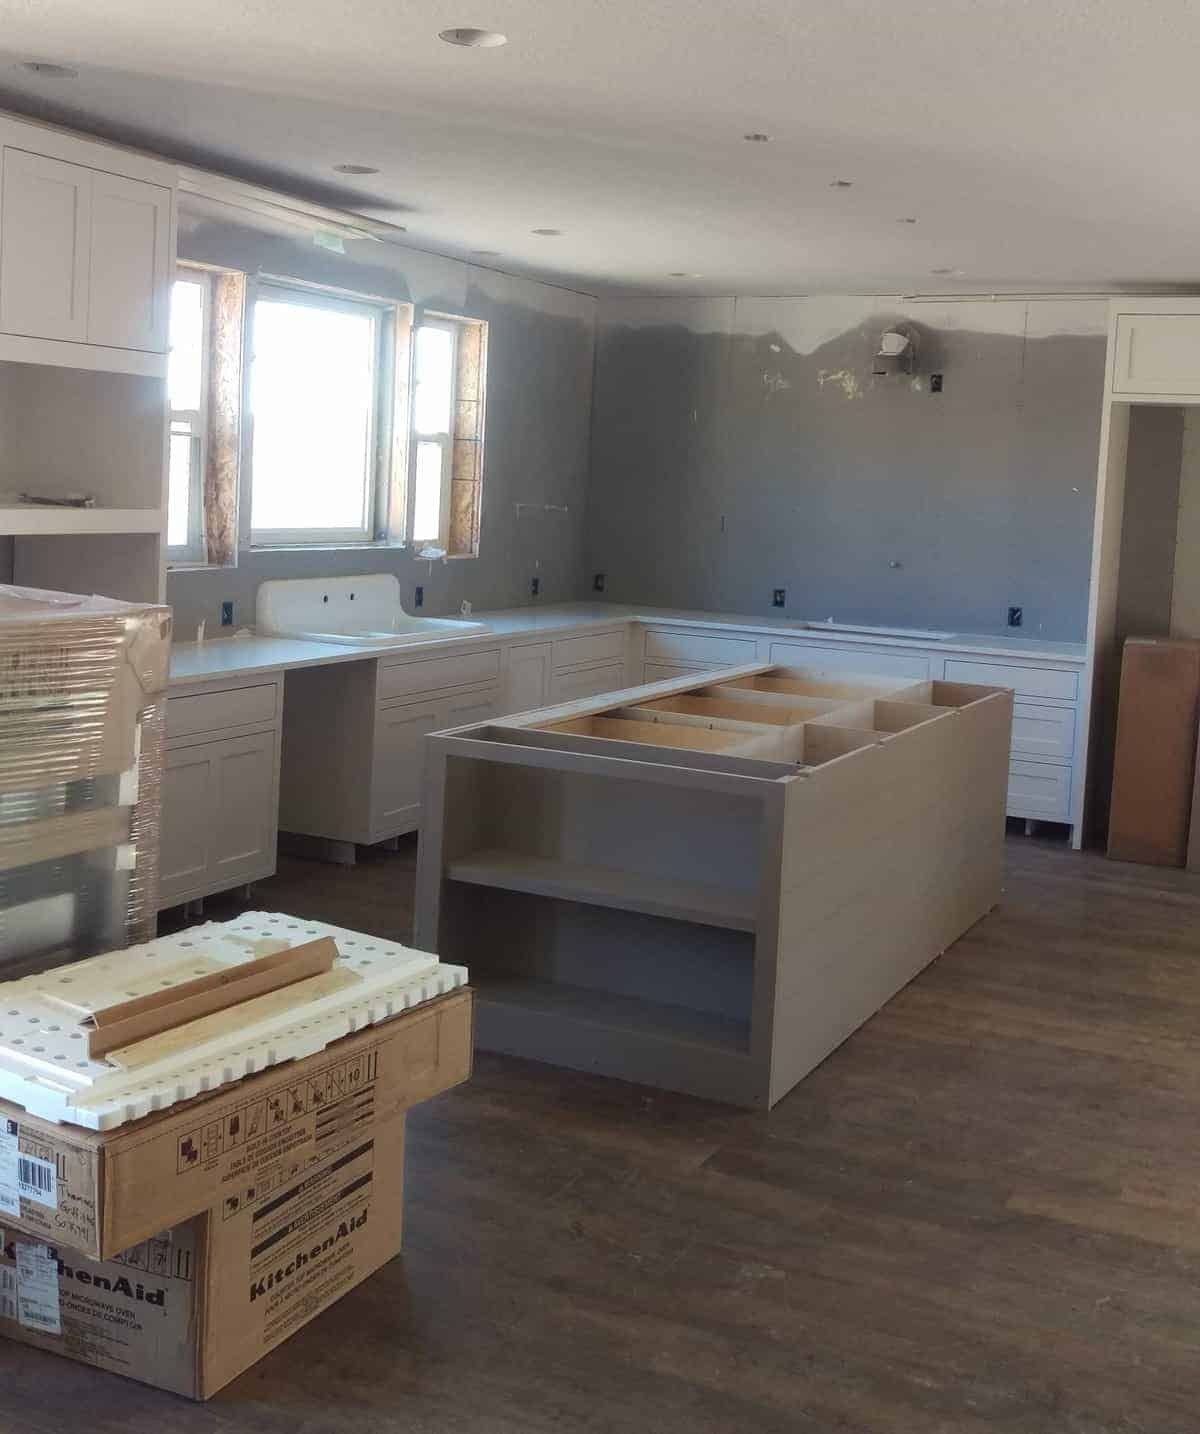 white cabinets and gray walls in the new kitchen